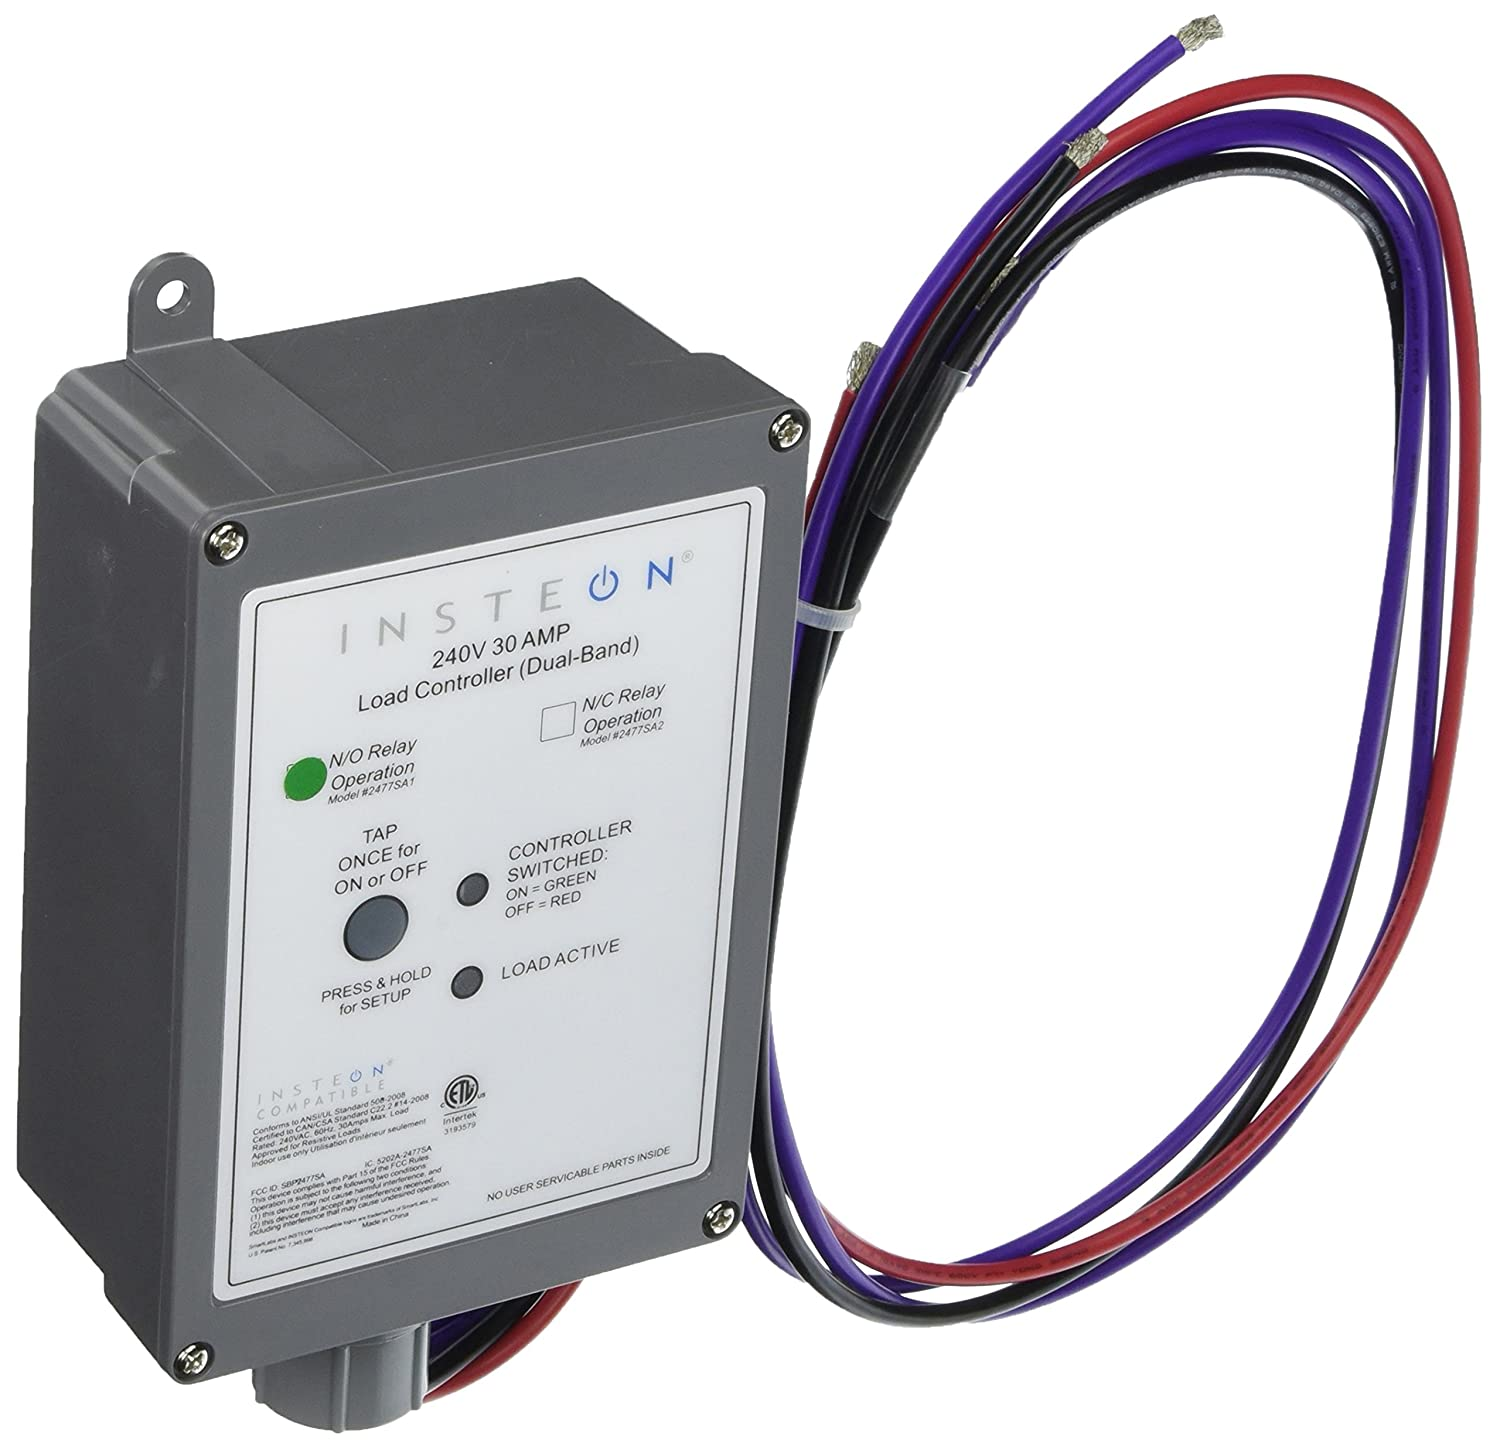 Insteon SA Insteon DualBand V  V AMP Load - Normally open relay vs normally closed relay